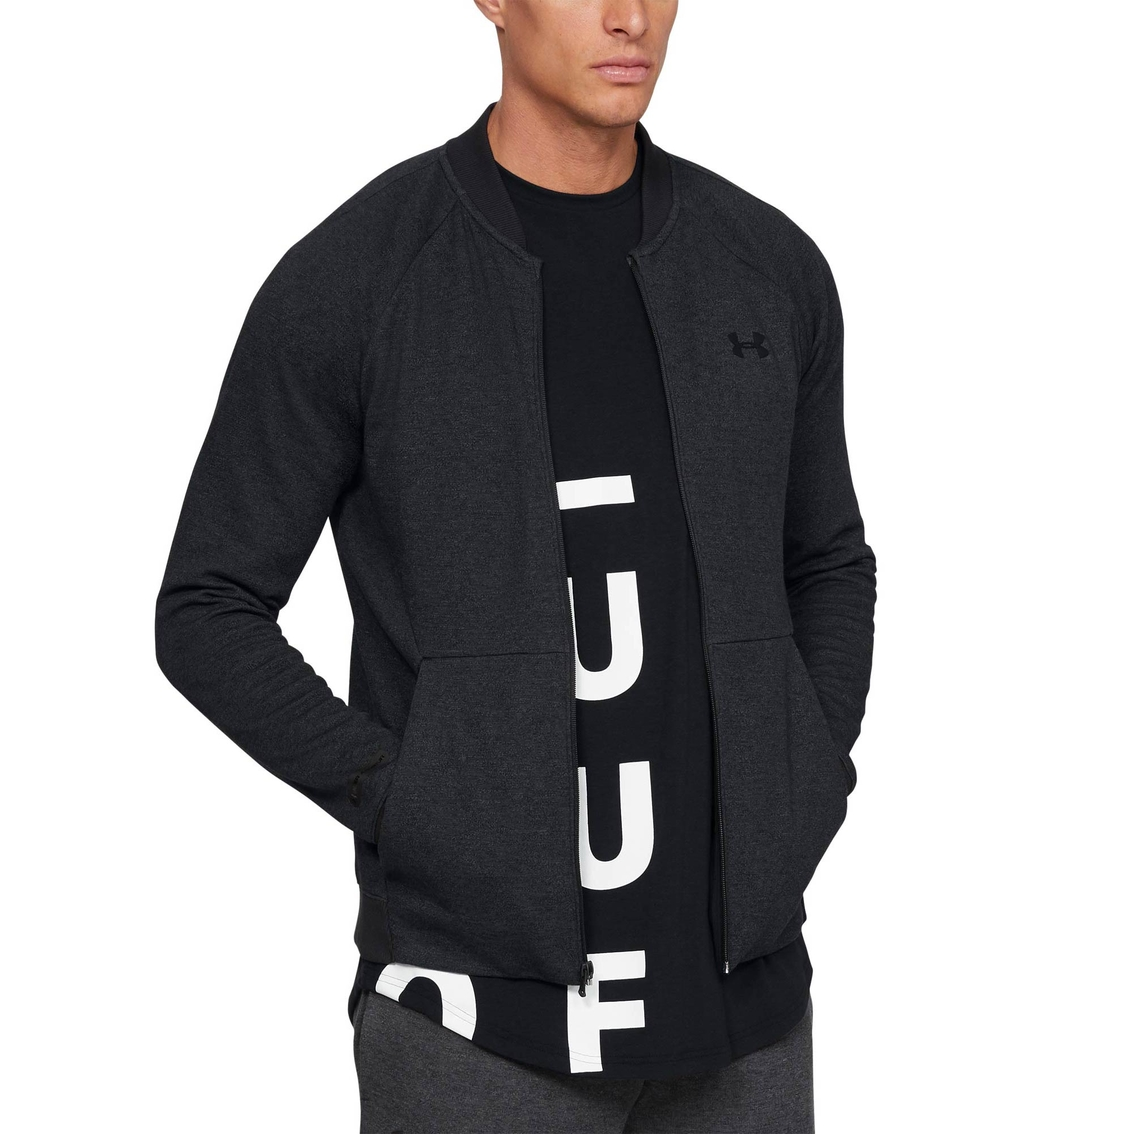 57d54235c11 Under Armour Unstoppable 2x Knit Bomber Warmup Top   Shirts ...